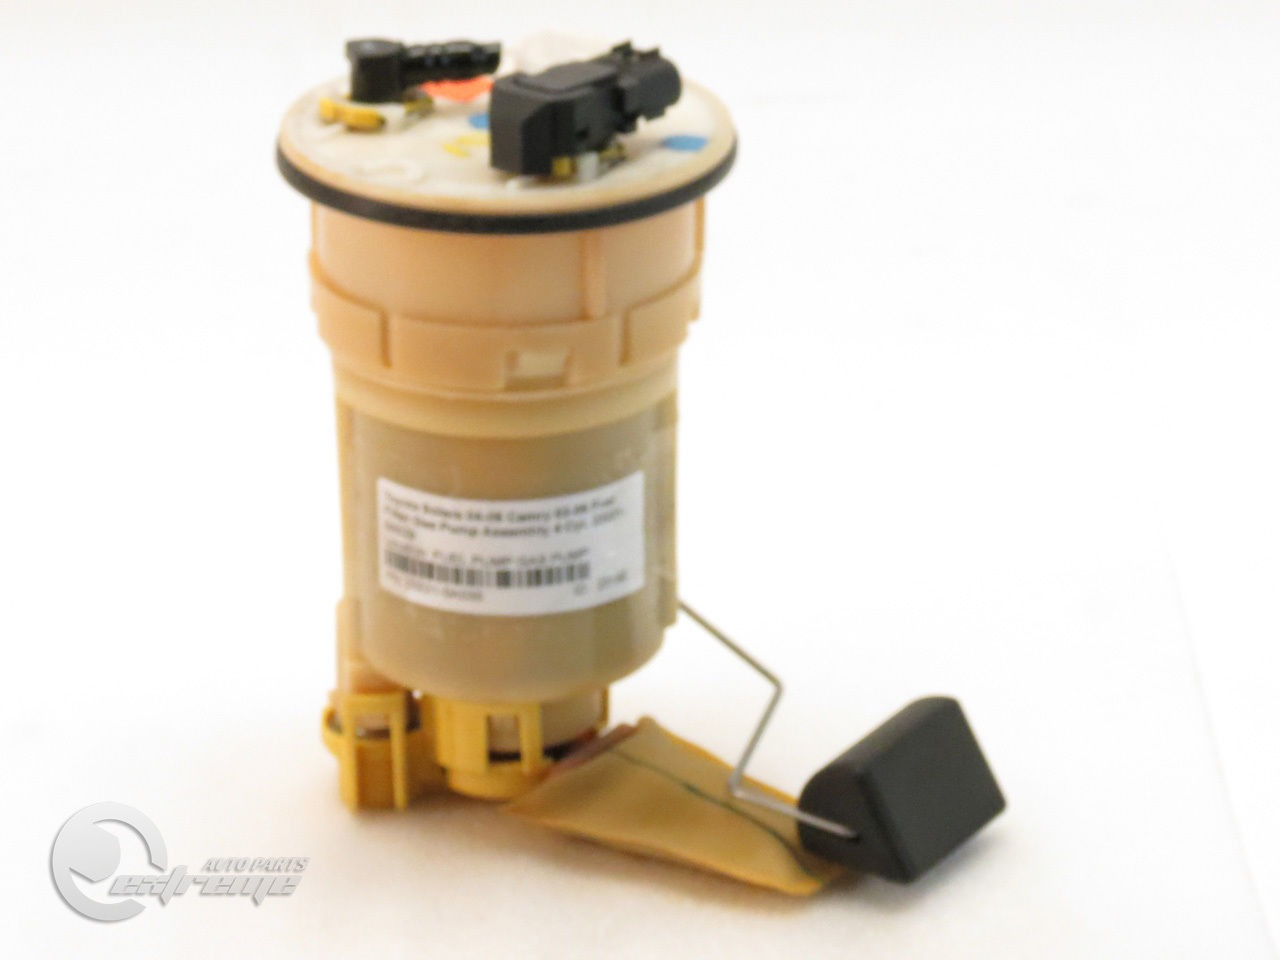 Toyota Solara 04 06 Camry 03 Fuel Filter Gas Pump Assembly 4 Cyl 2009 Location